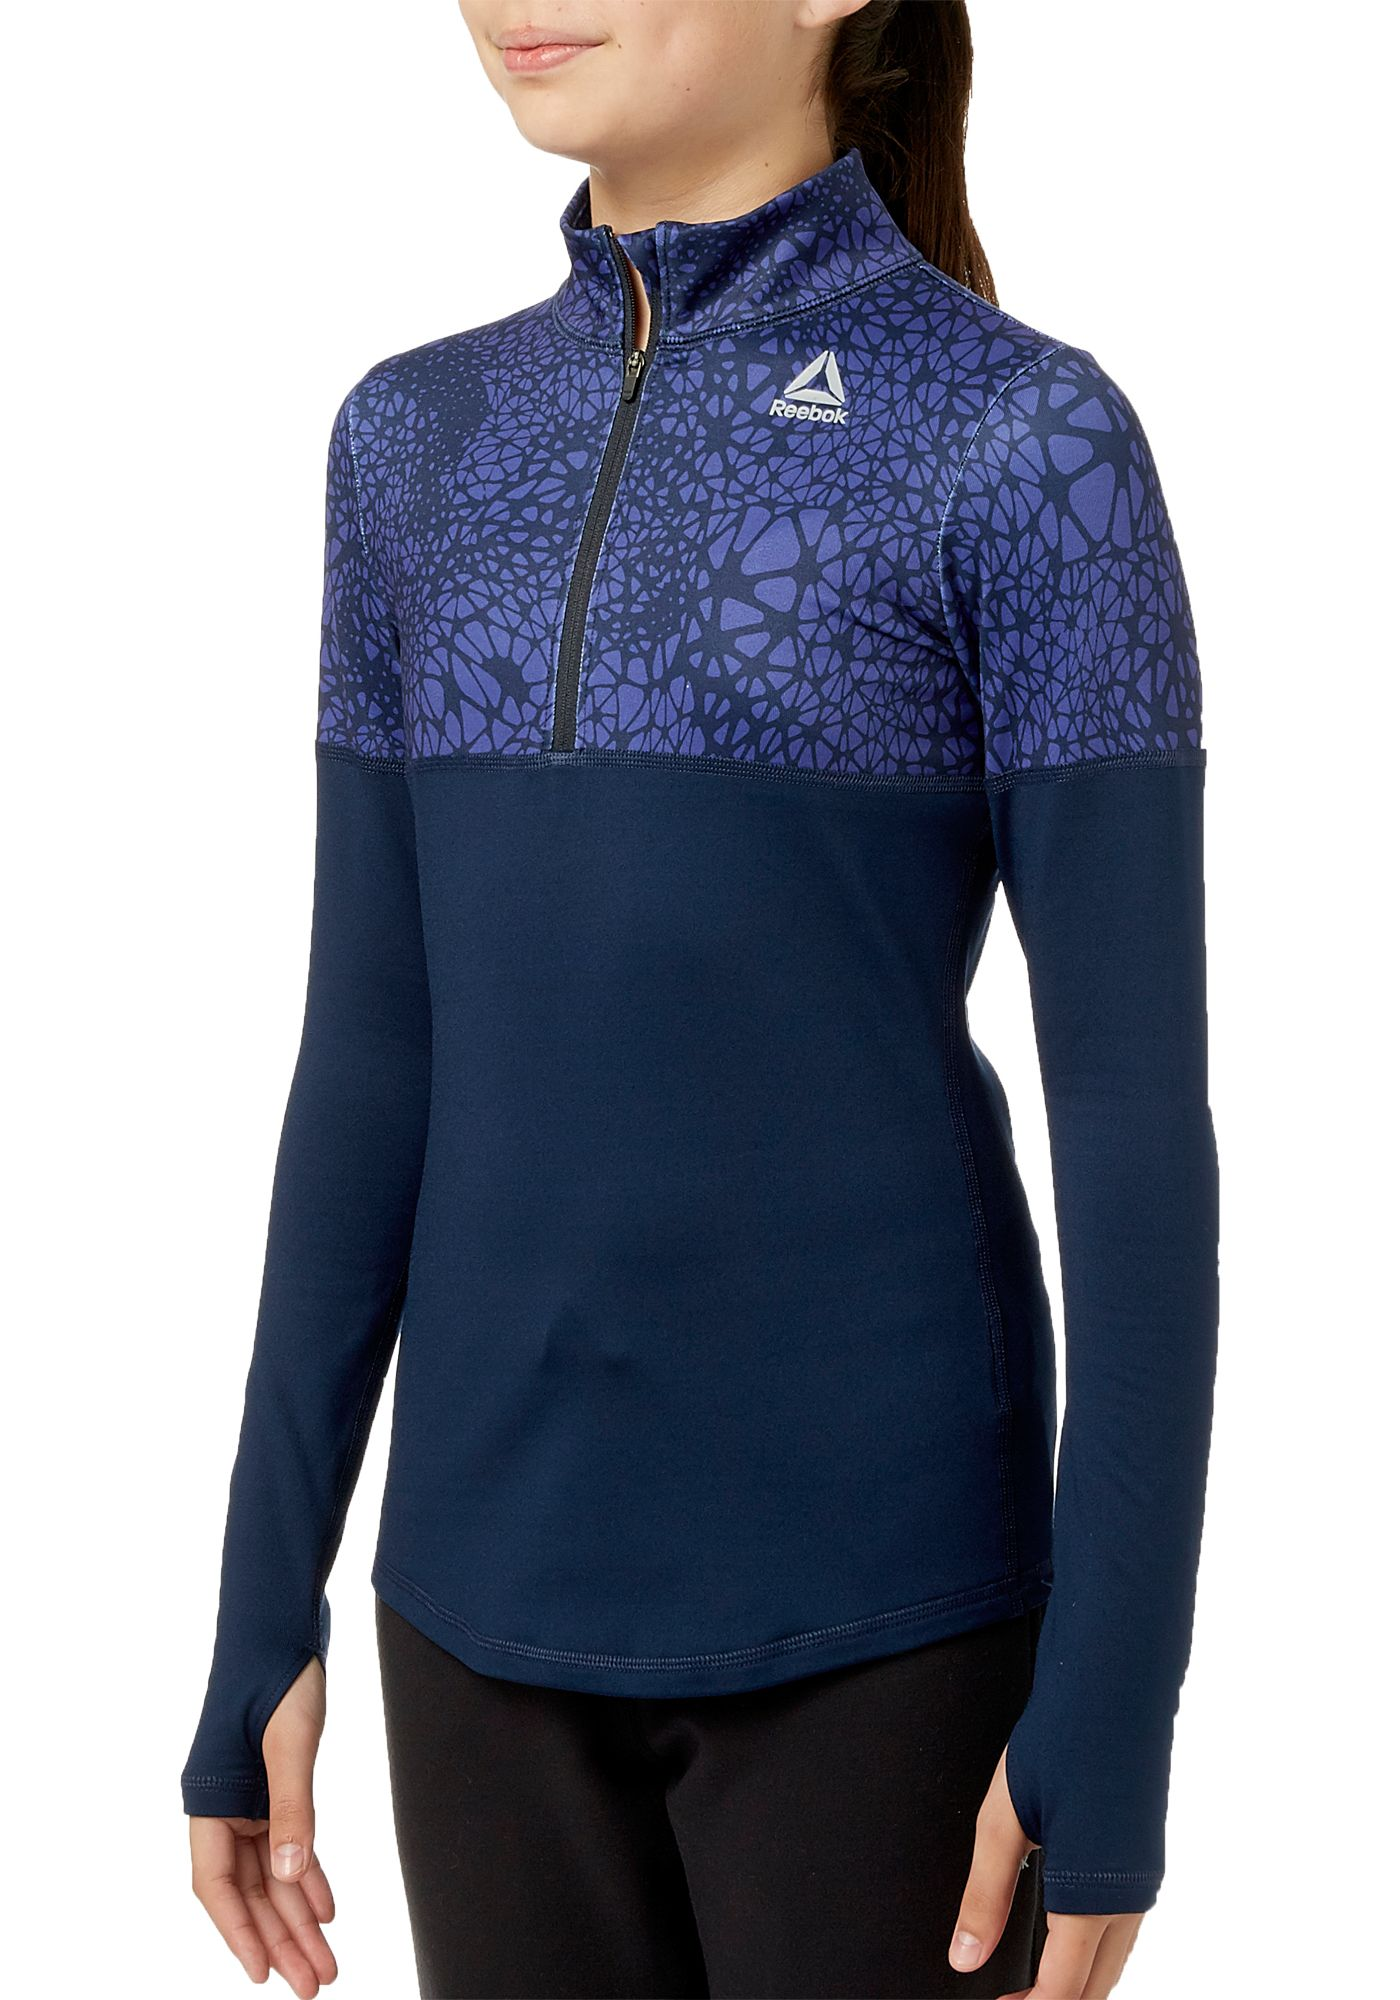 Reebok Girls' Cold Weather Compression 1/4 Zip Long Sleeve Shirt